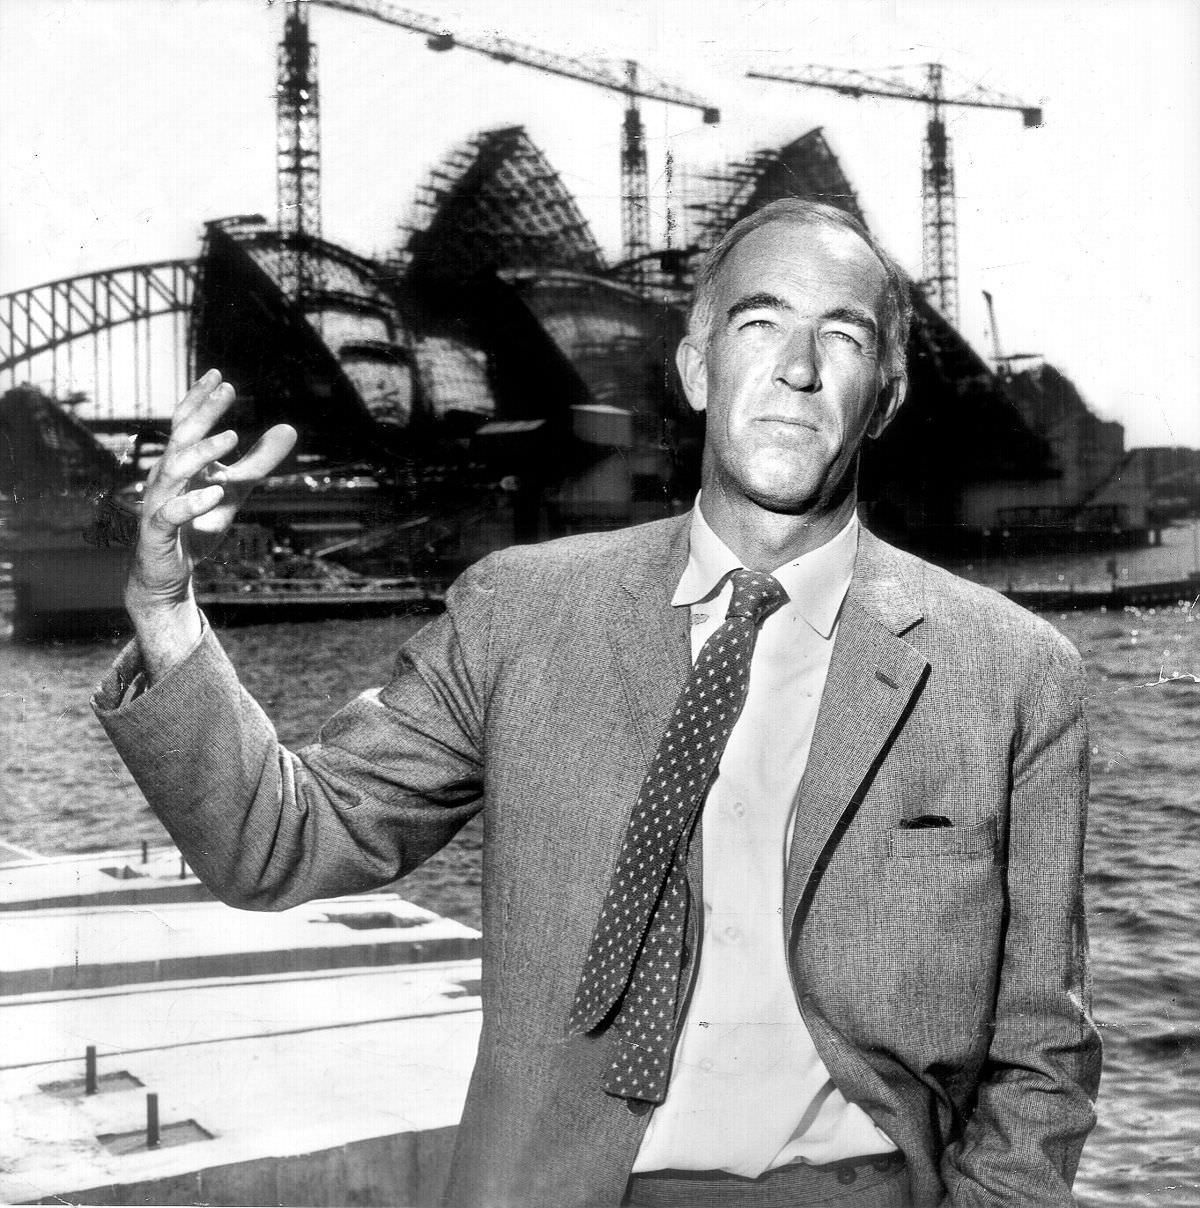 Architect Jørn Utzon in front of the Sydney Opera House, eight years after his designed was selected and six years into construction, 1965